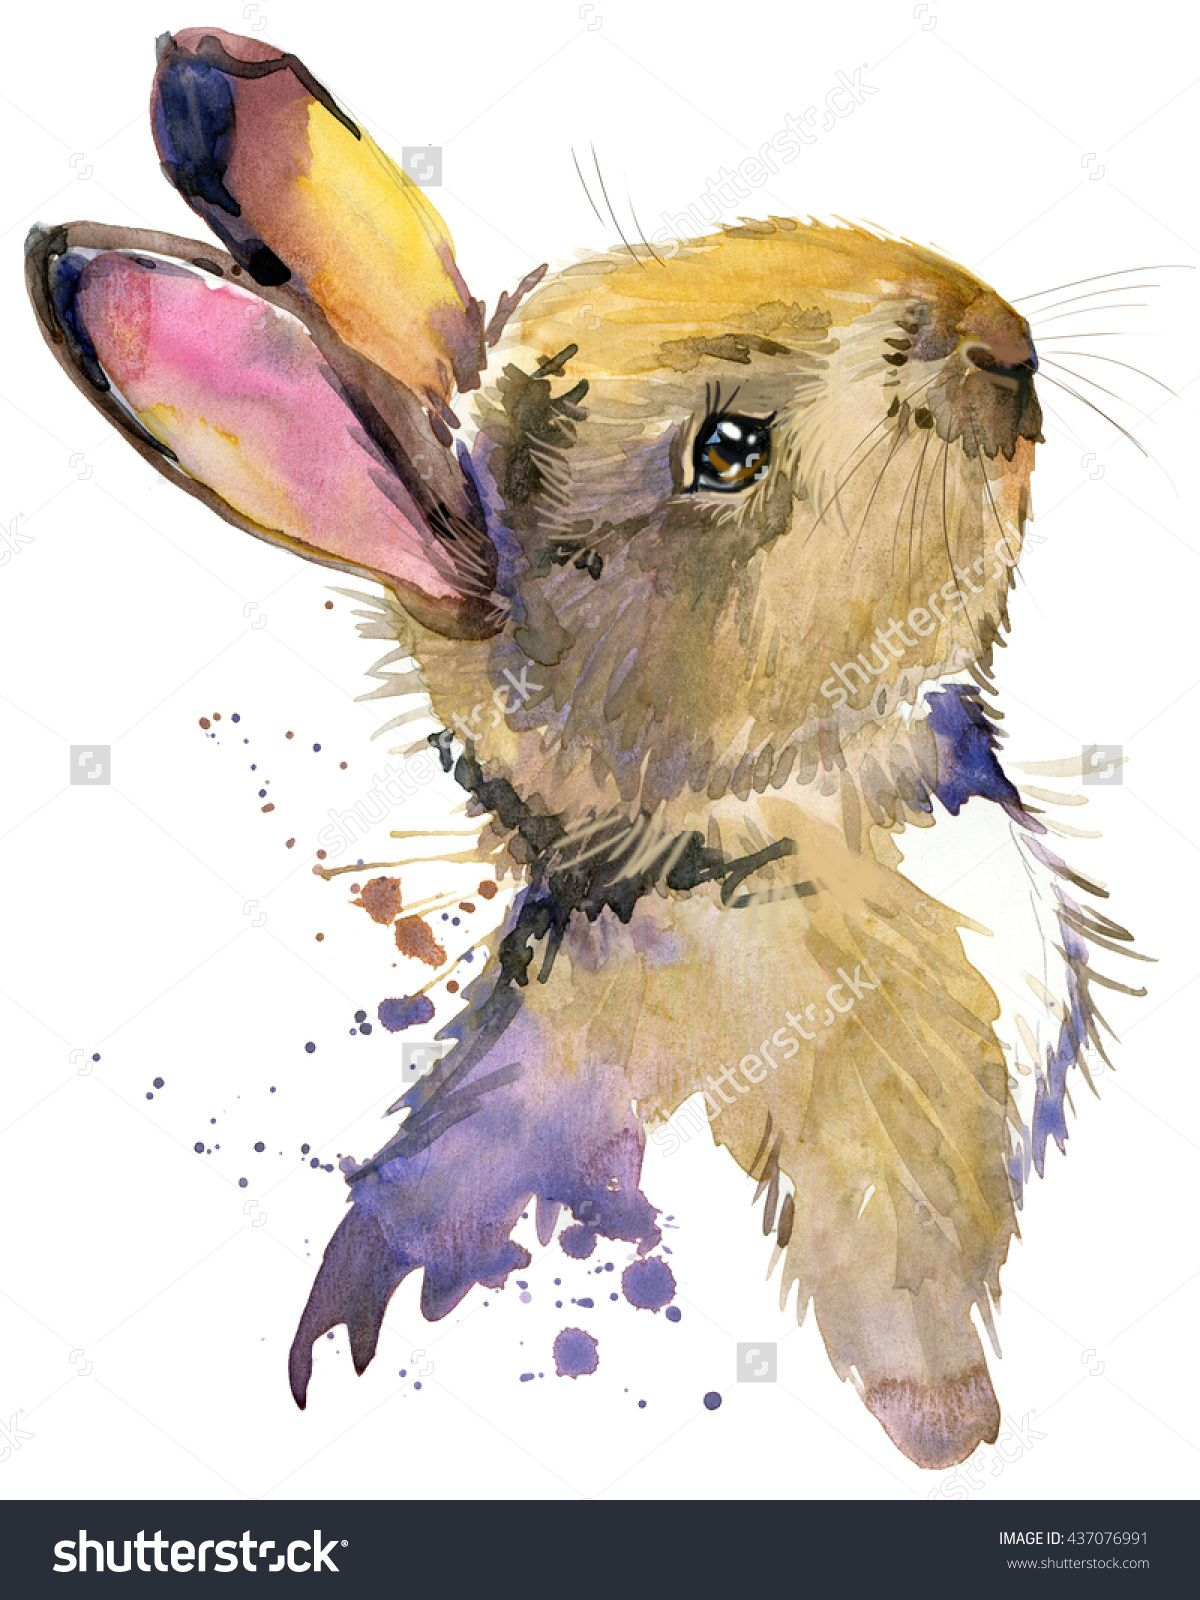 Cute Rabbit Hare Watercolor Animal Wild Animal Forest Animal